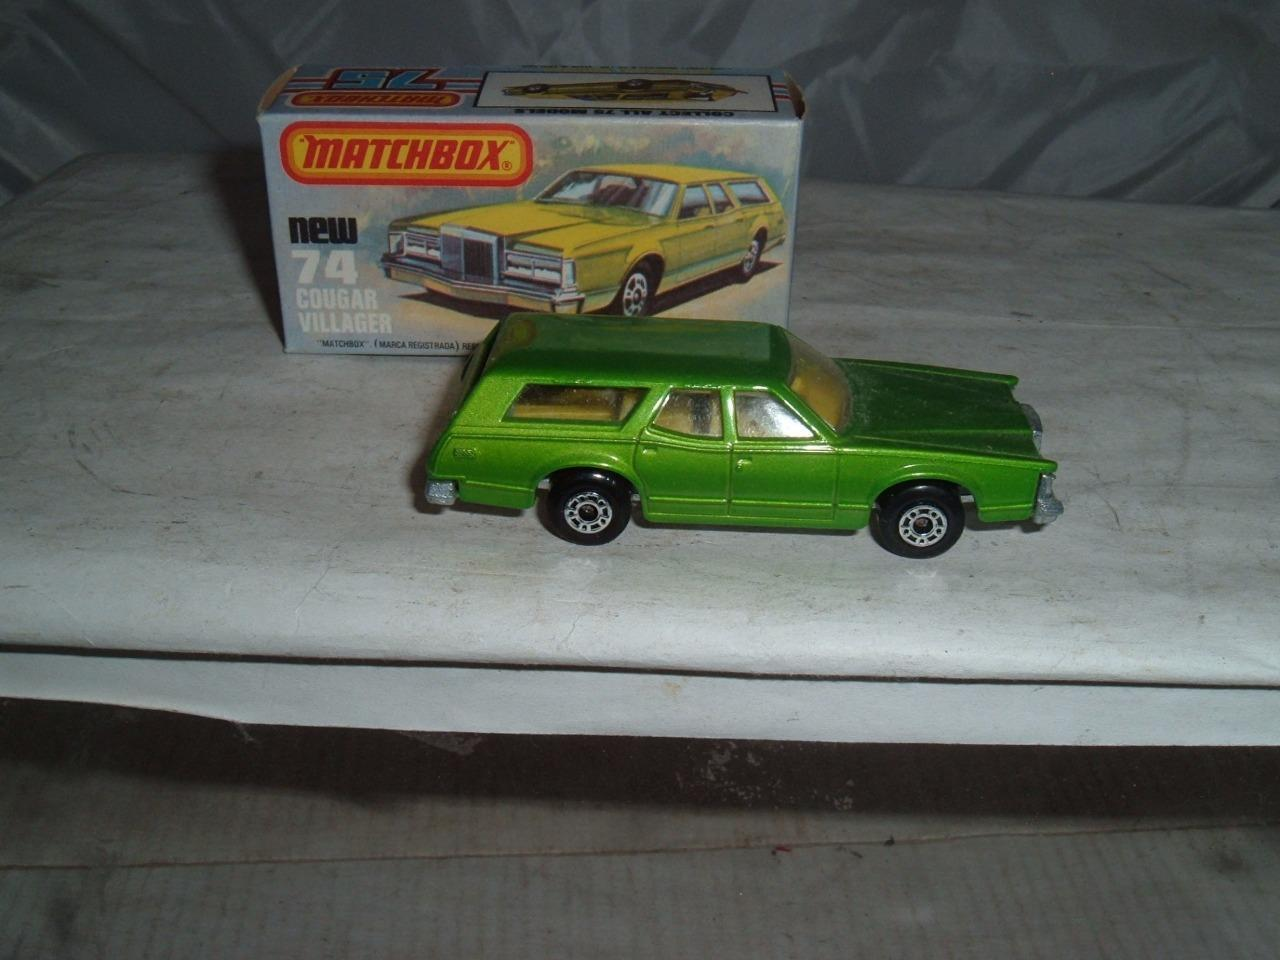 MATCHBOX SUPERFAST C COUGAR VILLAGER WITH ITS BOX PLEASE SEE THE PHOTOS